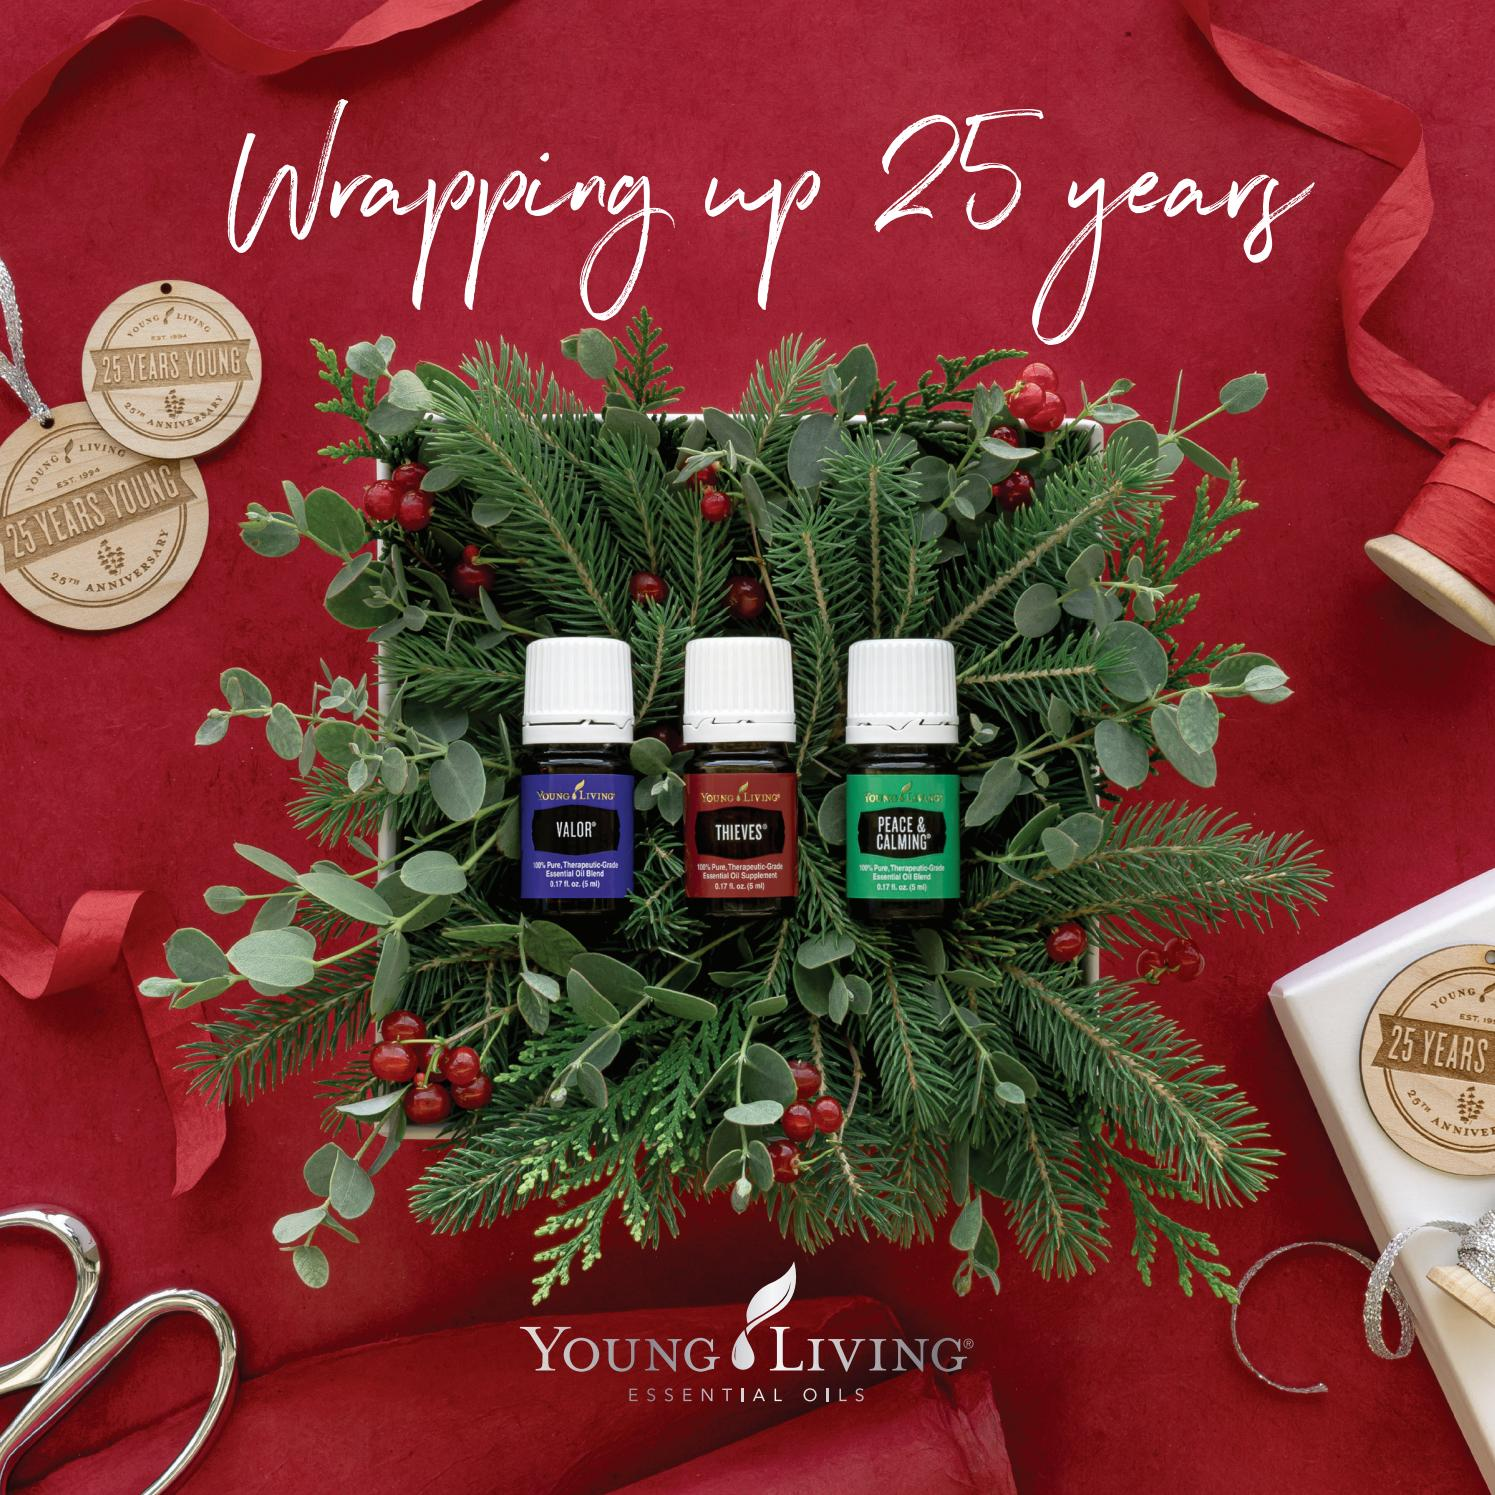 Doterra Christmas 2020 2019 U.S. Holiday Catalog: Wrapping Up 25 Years by Young Living